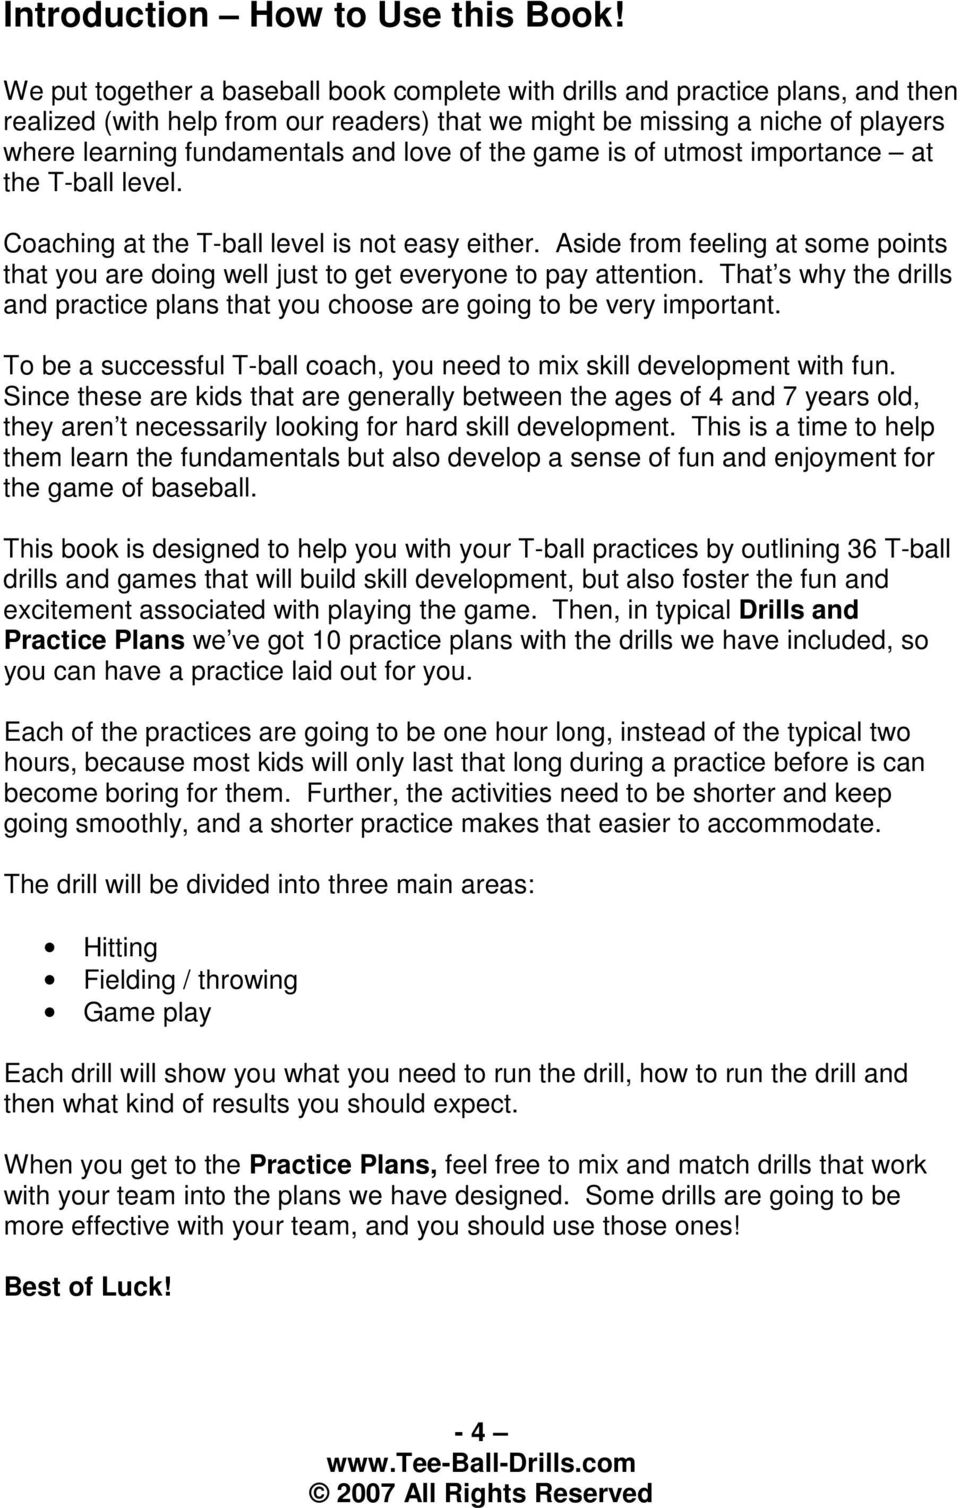 T Ball Drills And Practice Plans Pdf Free Download